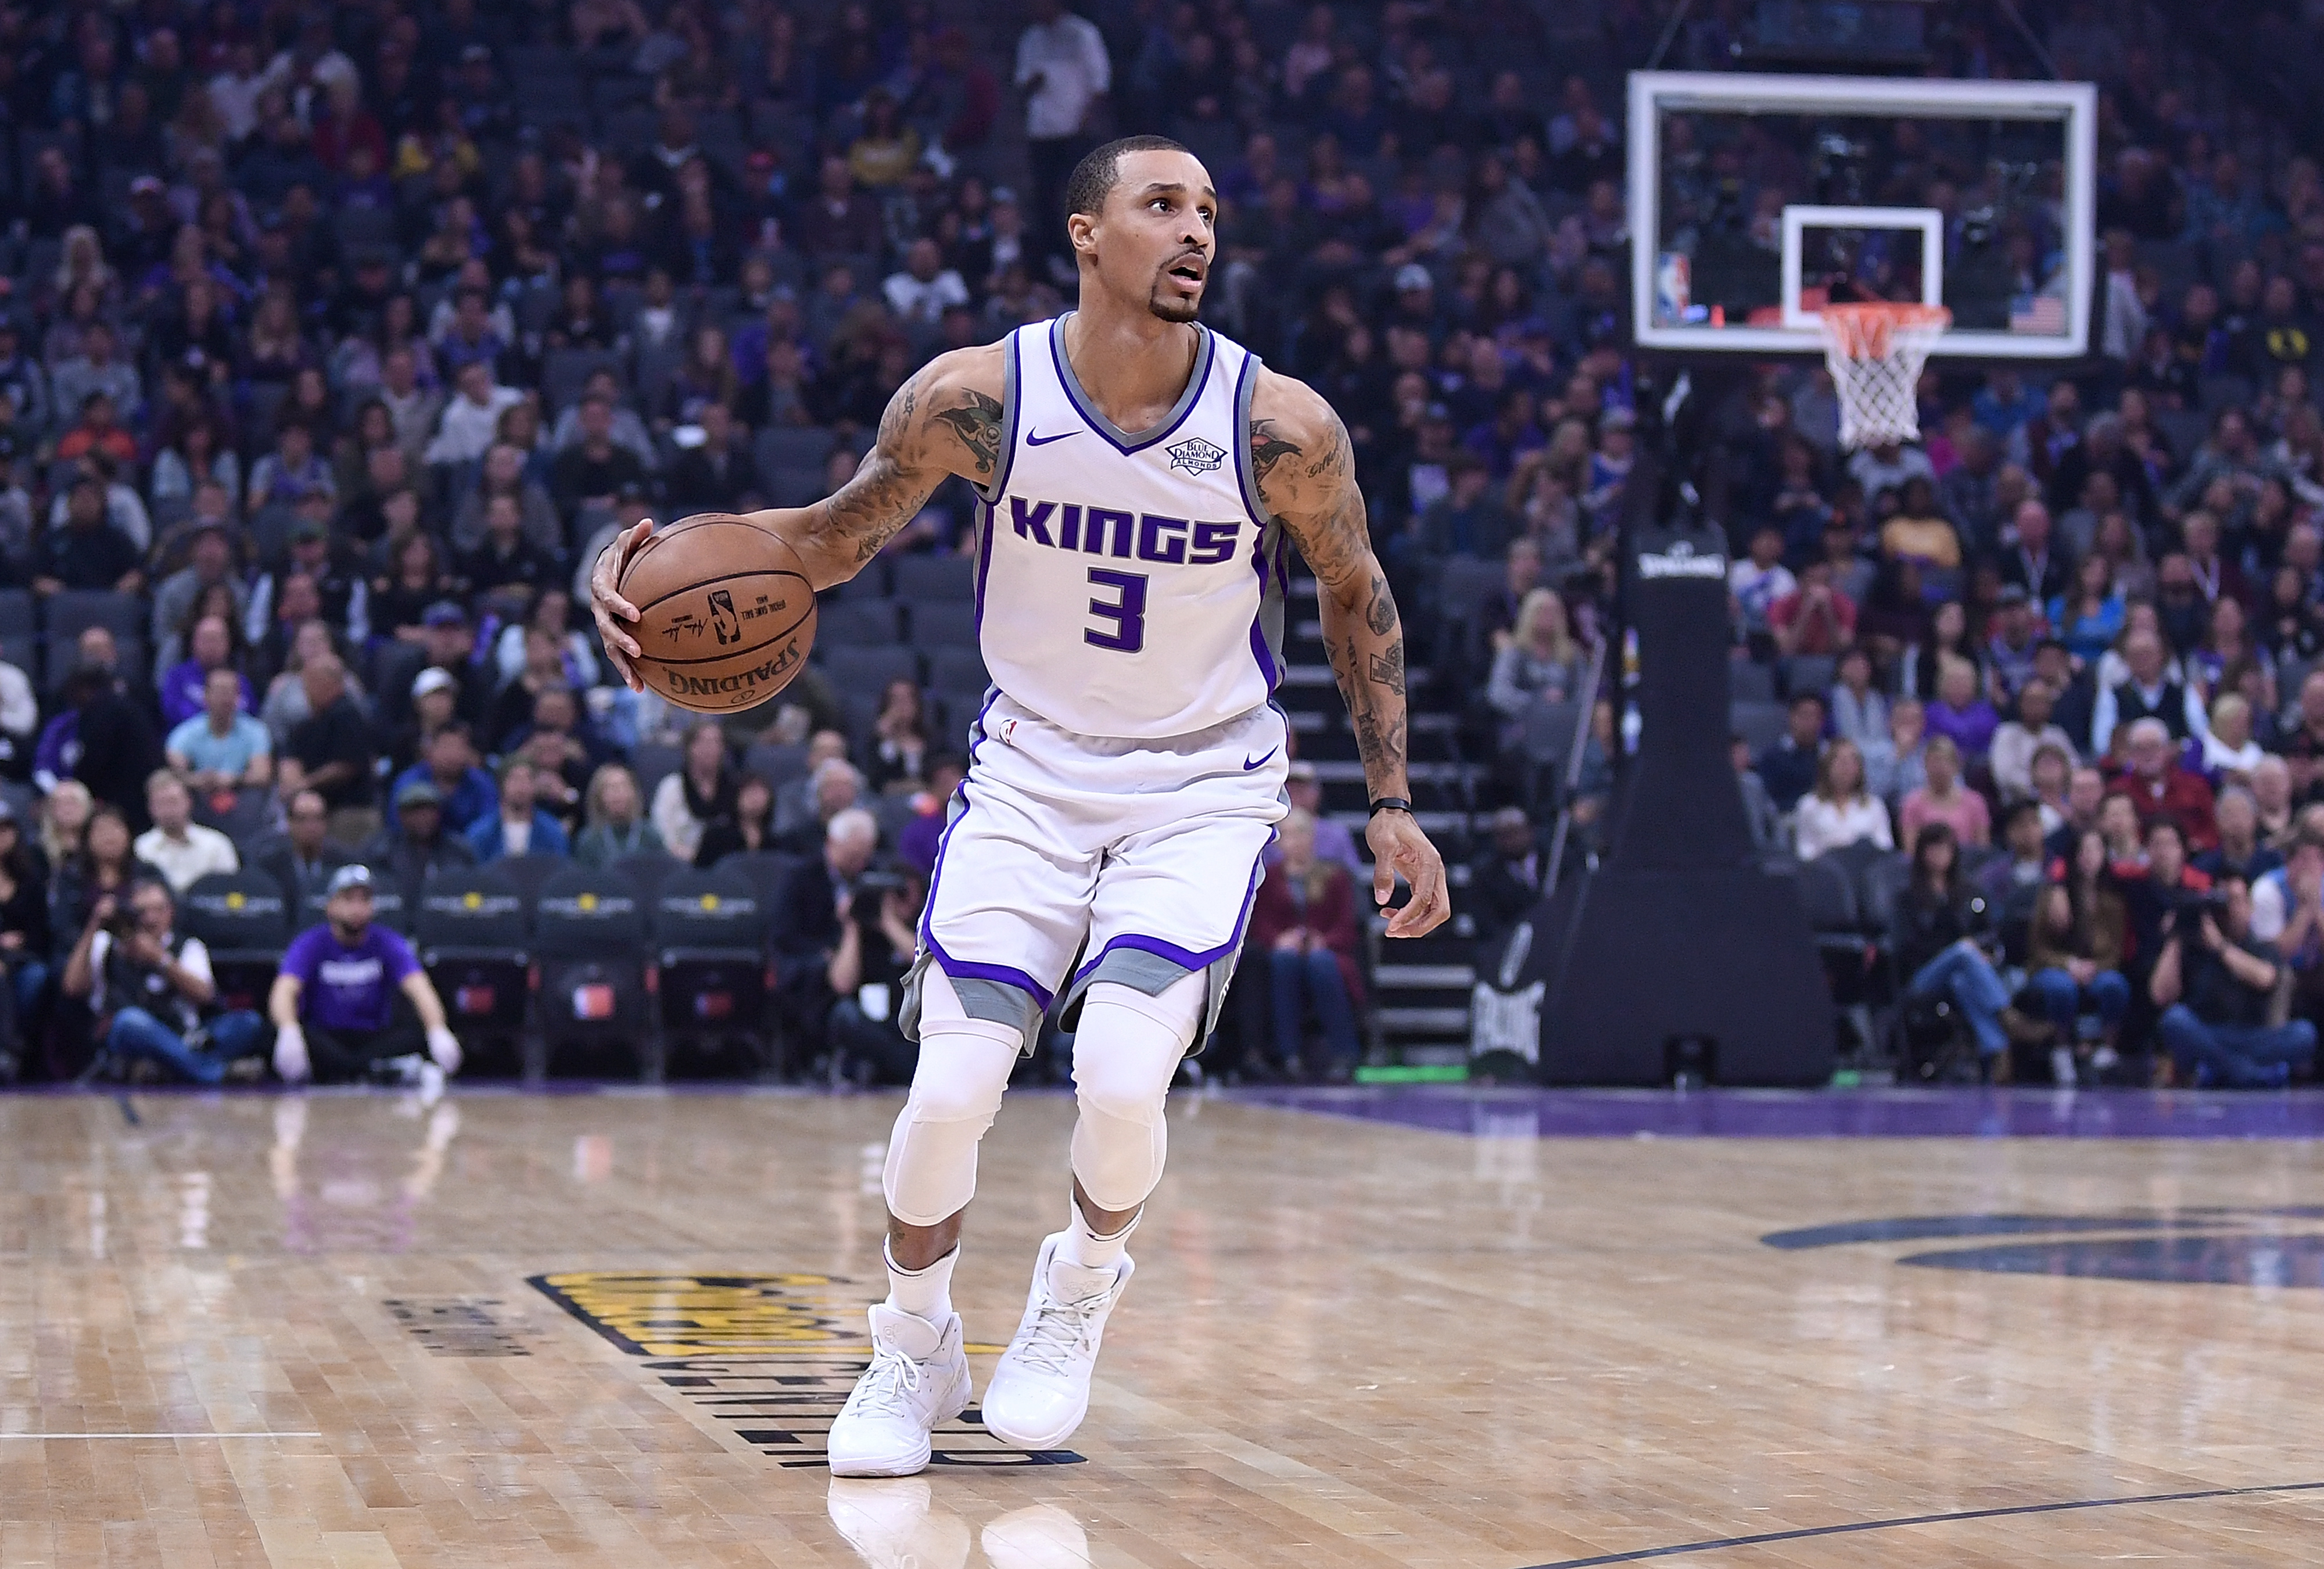 Cavs reportedly interested in trading for George Hill